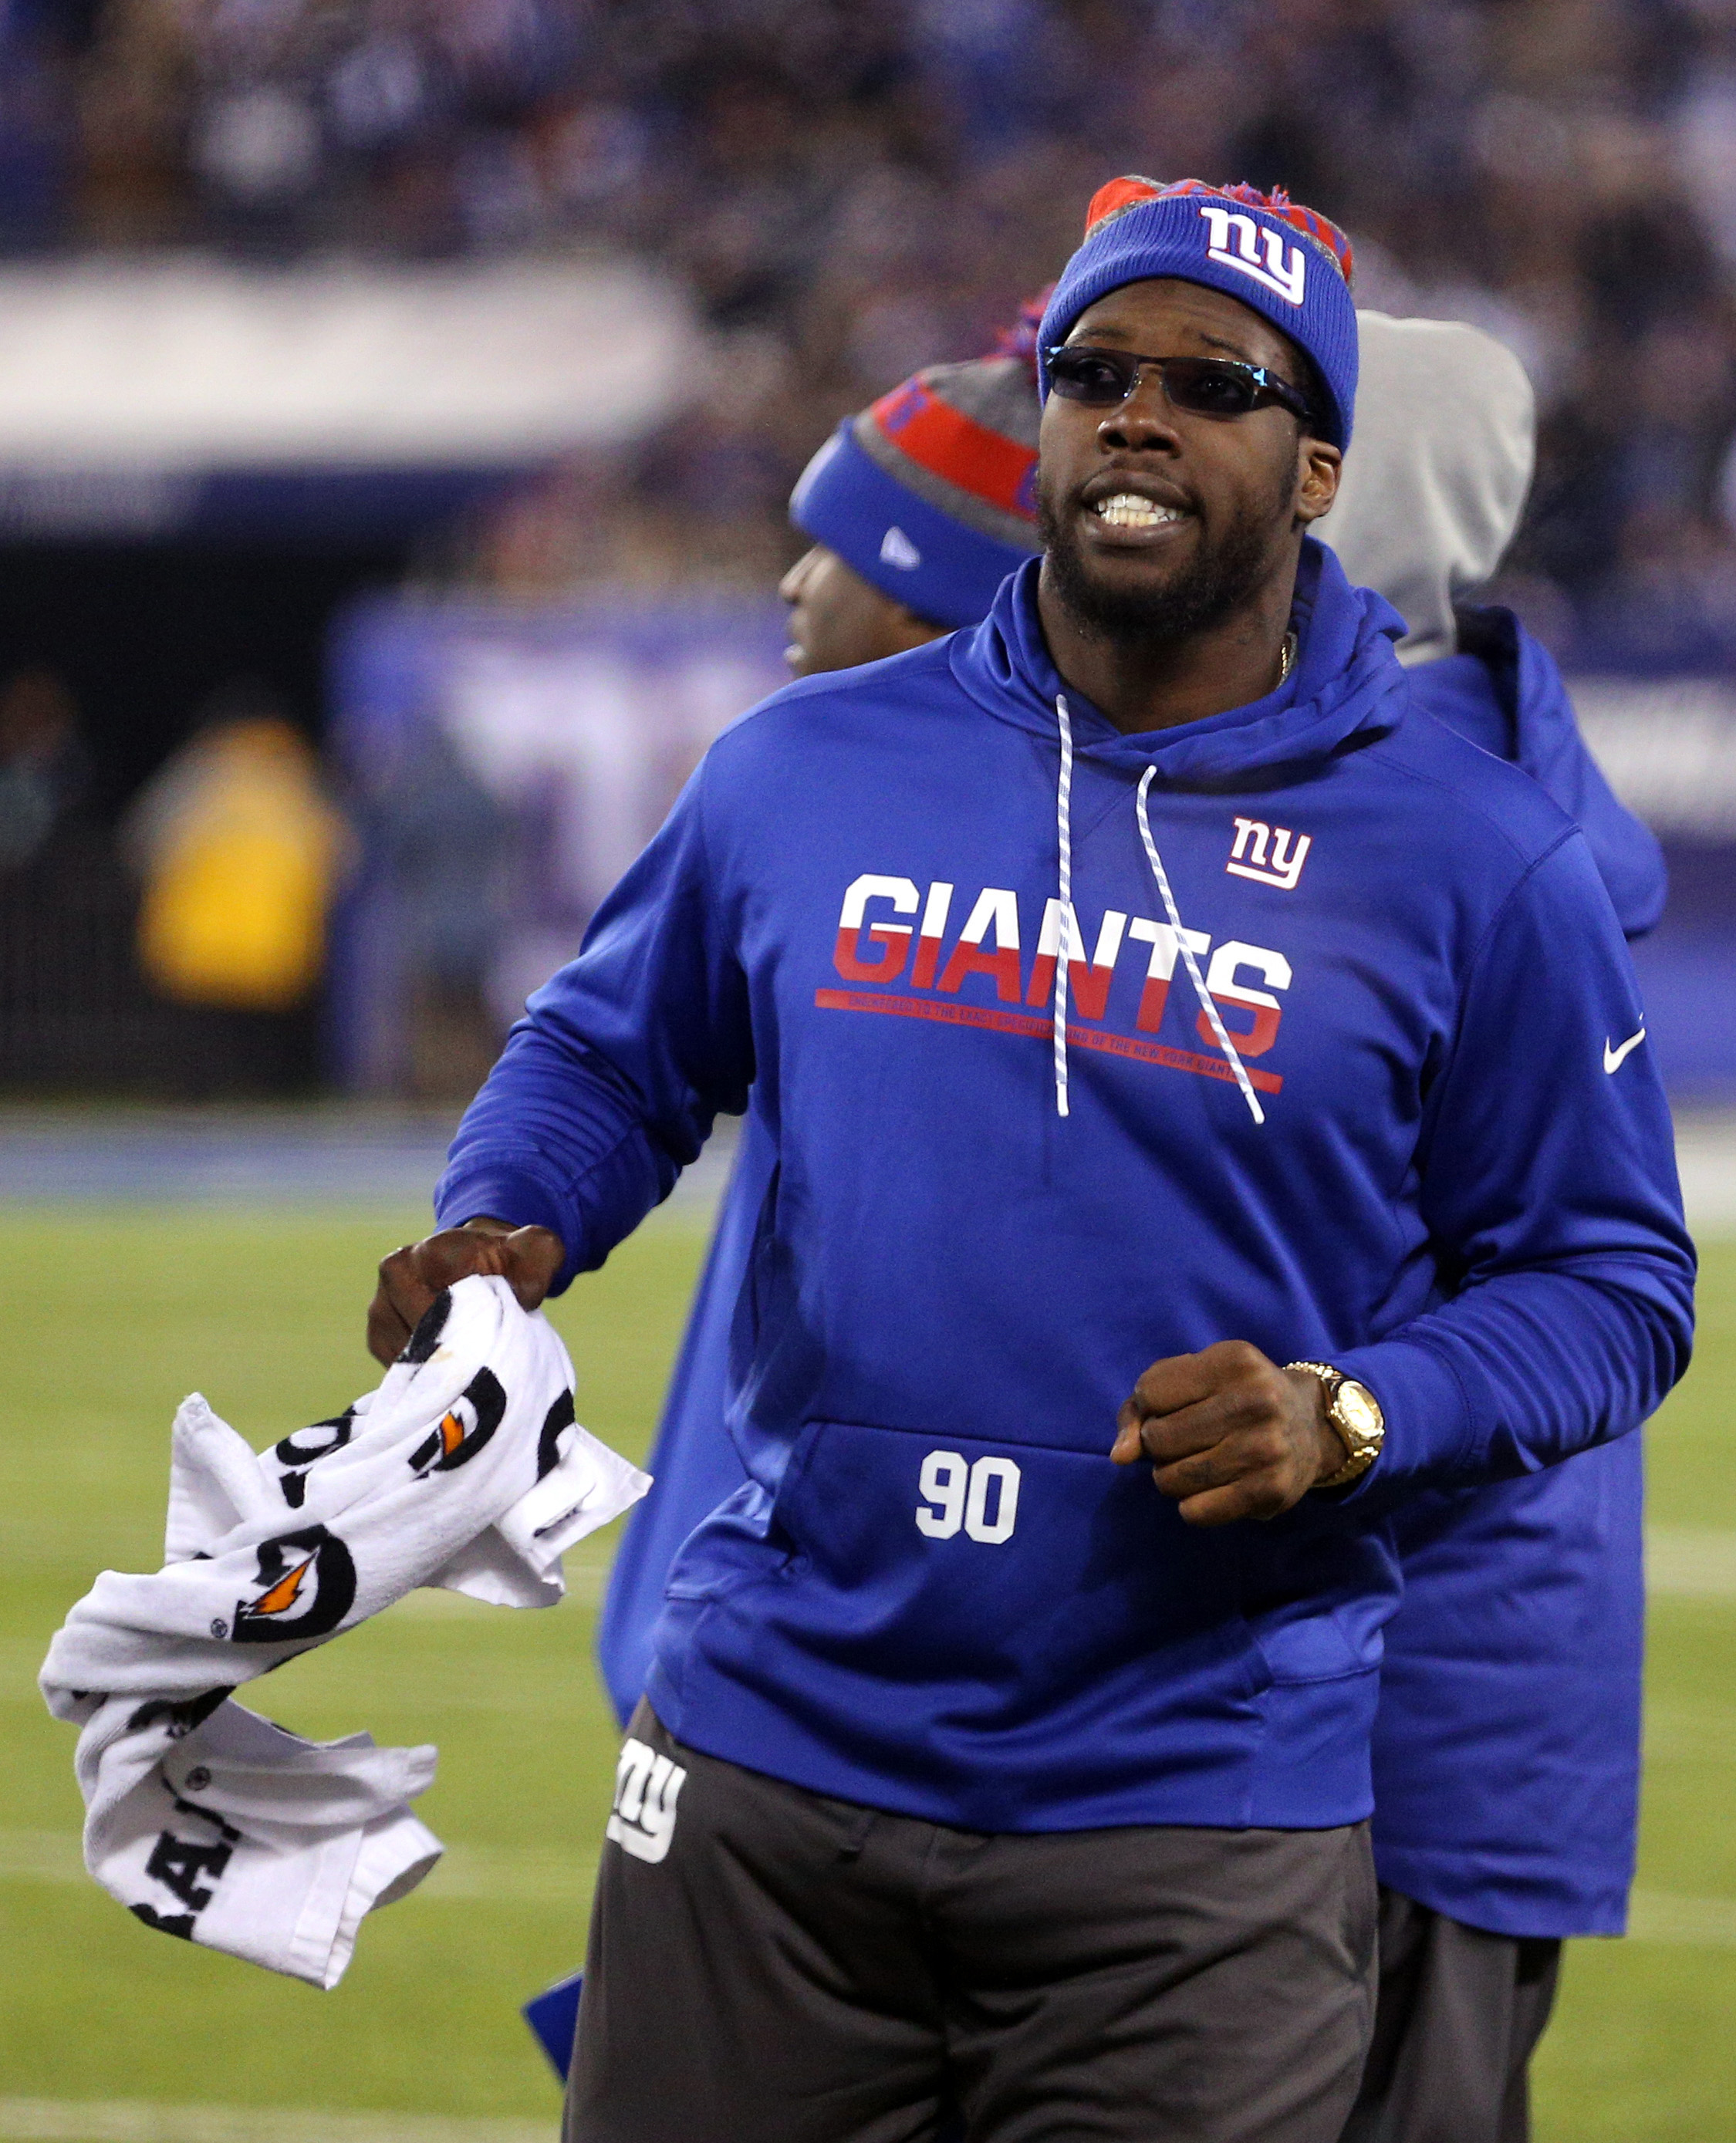 Giants' Jason Pierre-Paul Won't Sign Another One-Year Deal